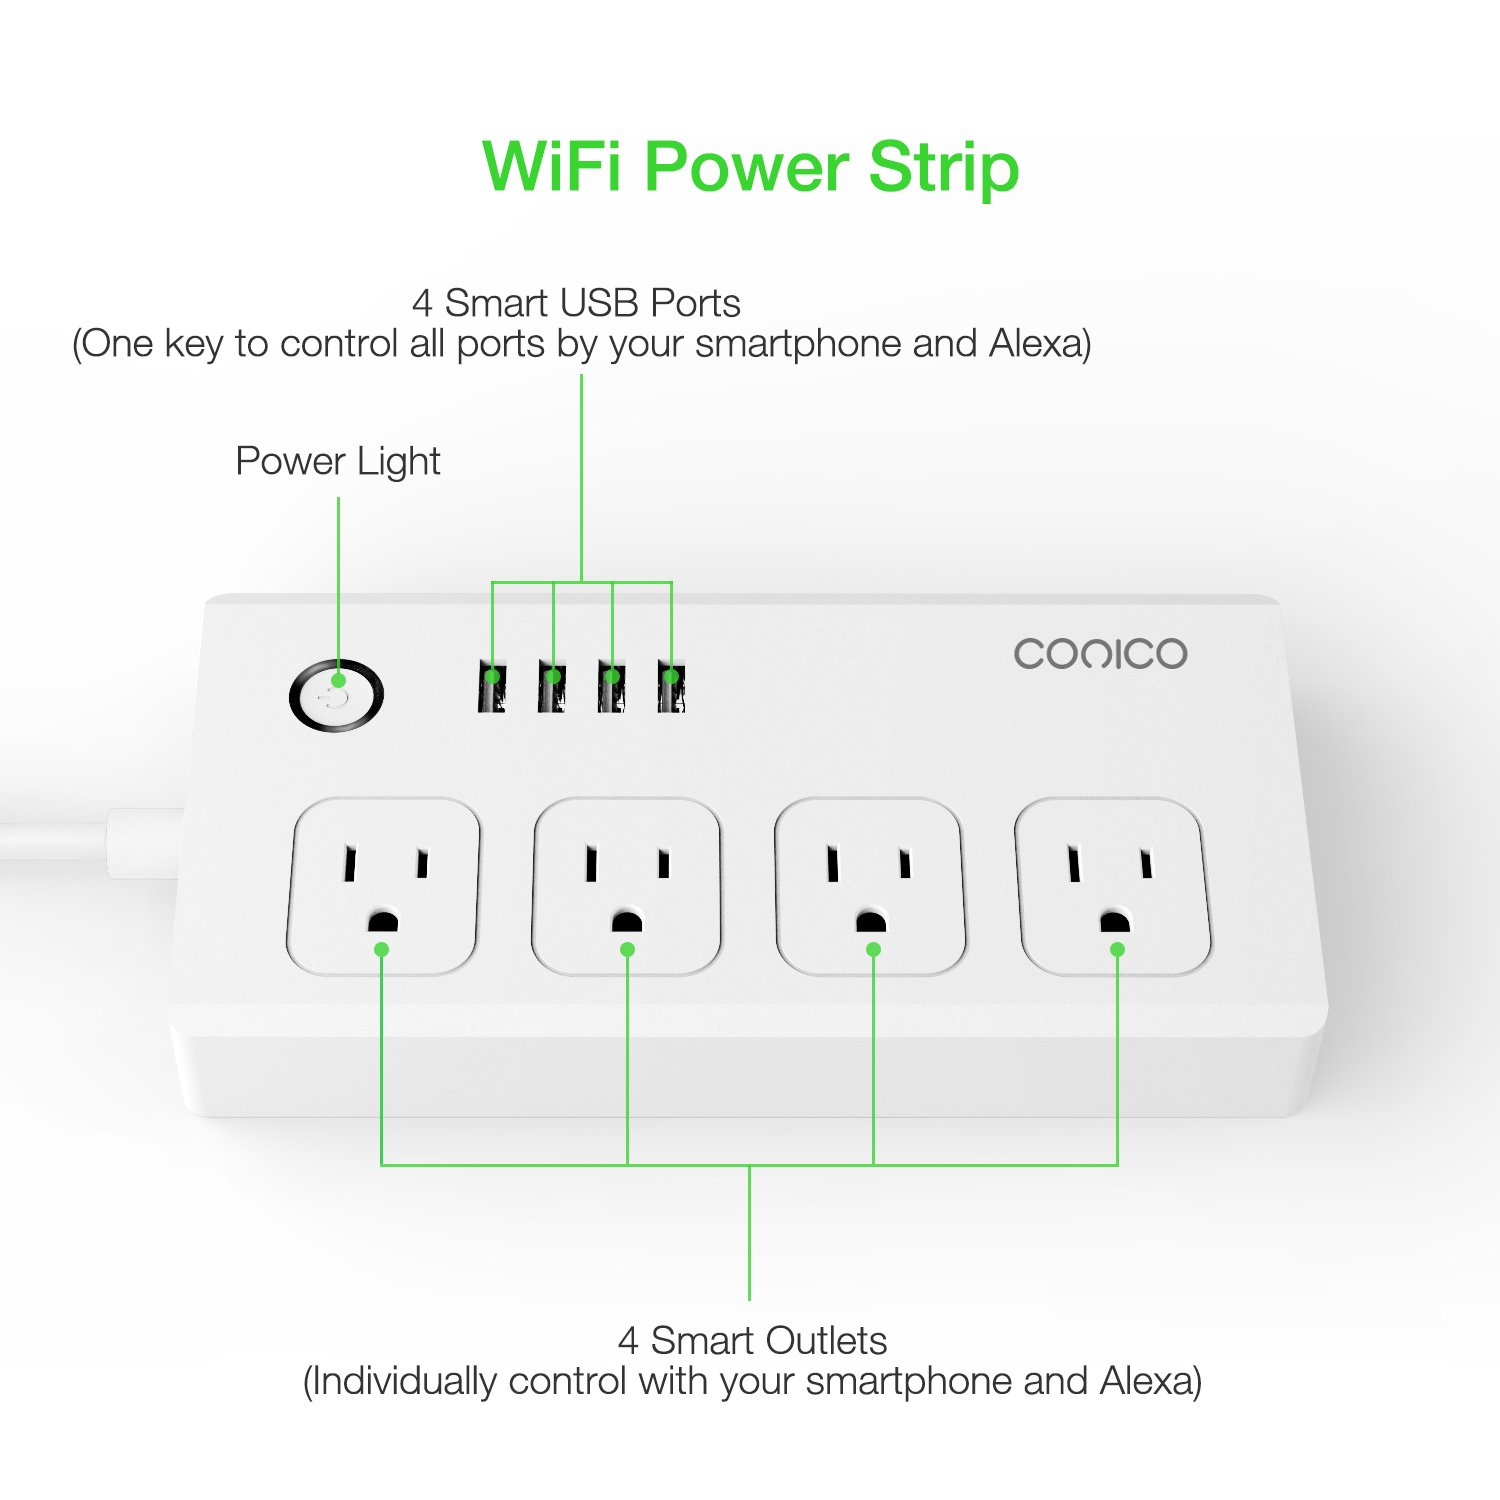 Conico 1sk33w Wi Fi Smart Power Strip Surge Protector Multi Outlet 120 Volt Plug Wiring Diagram With Multiple Plugs Has 4 Usb Ports And Individual Control Ac